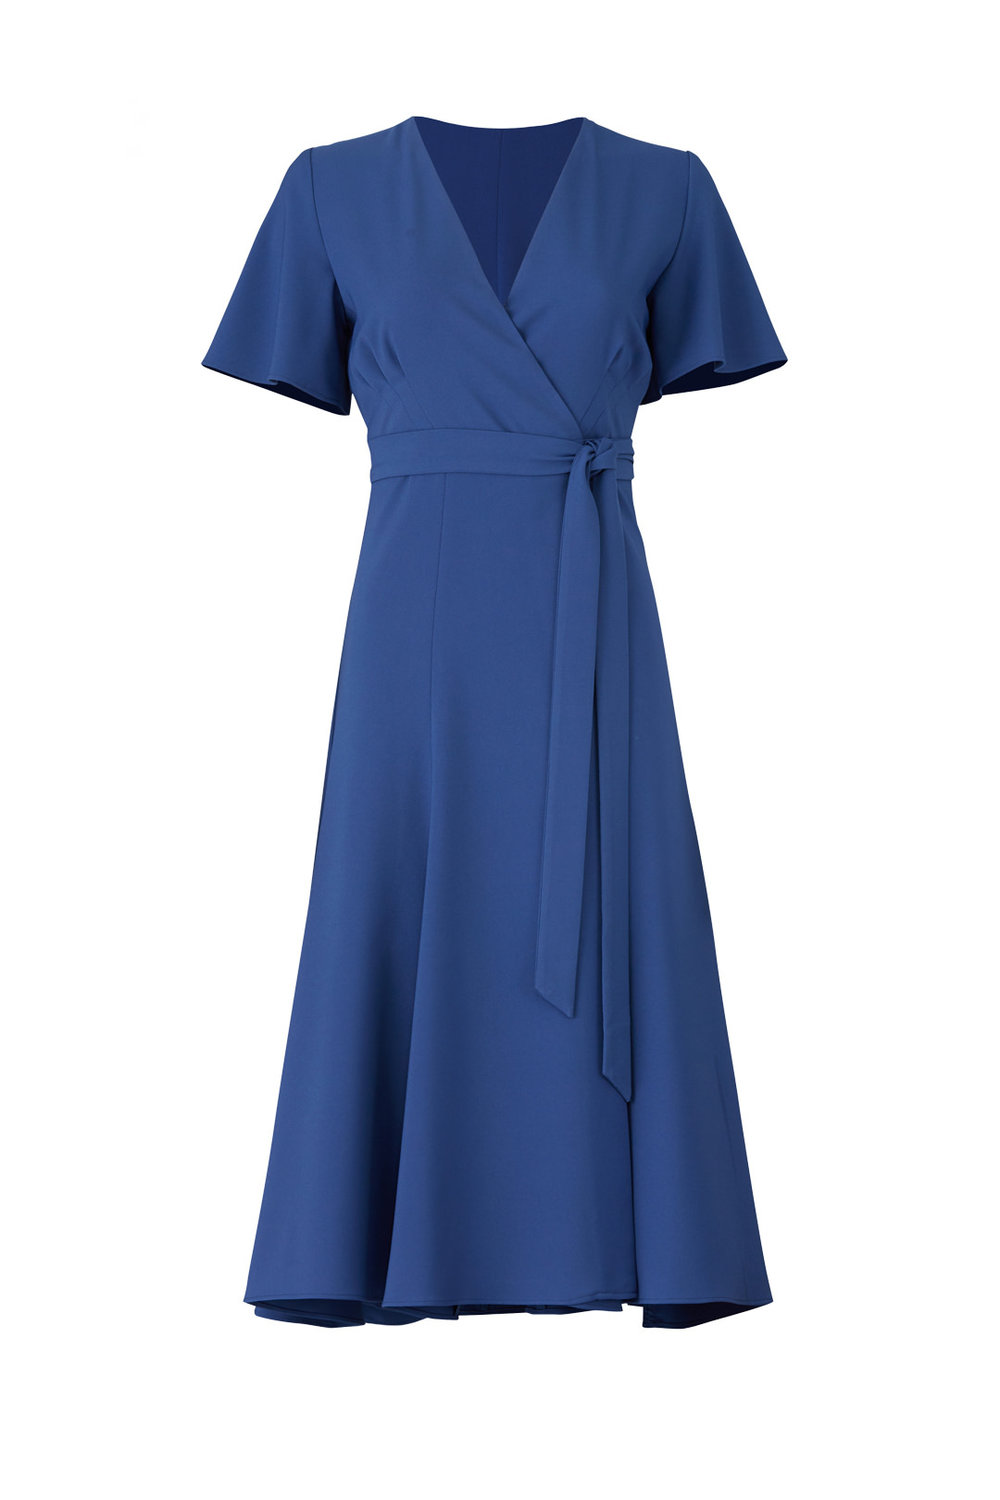 Kiera Wrap Dress by Hutch - Why It Works: Wrap dresses are super flattering for many body types. The color is just beautiful and will work with most skin tones. Also, it reminds me of Kate Middleton's engagement dress, which is a win in my book!